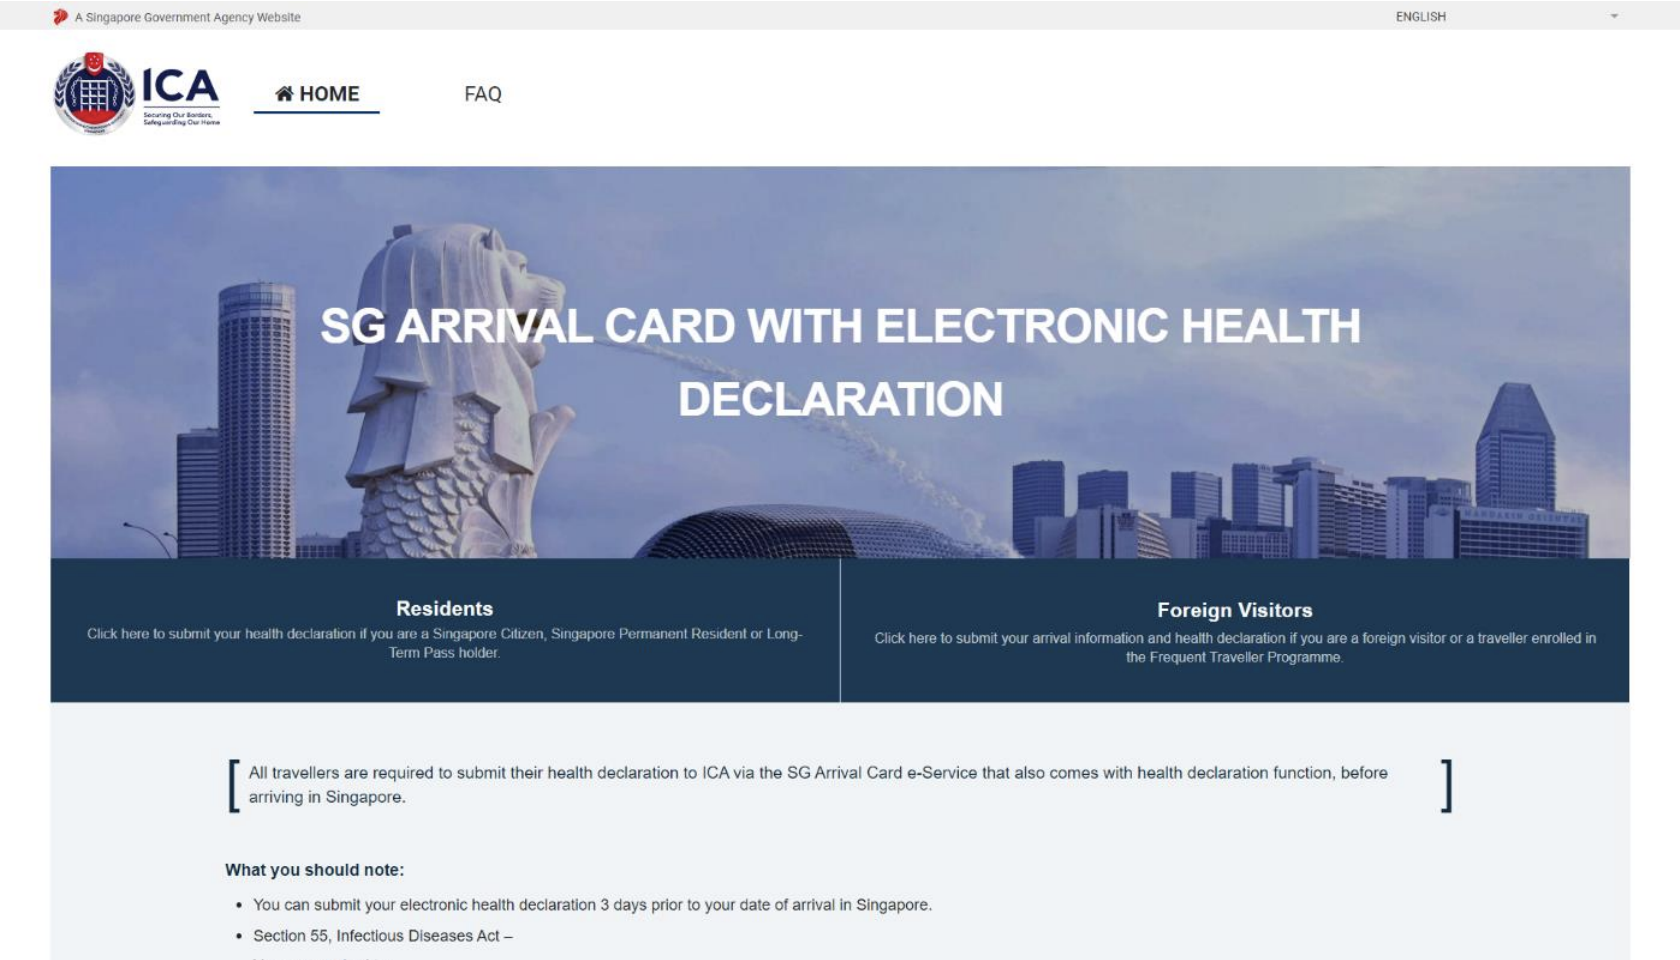 Landing page of SG Arrival Card website. Photo courtesy: ICA